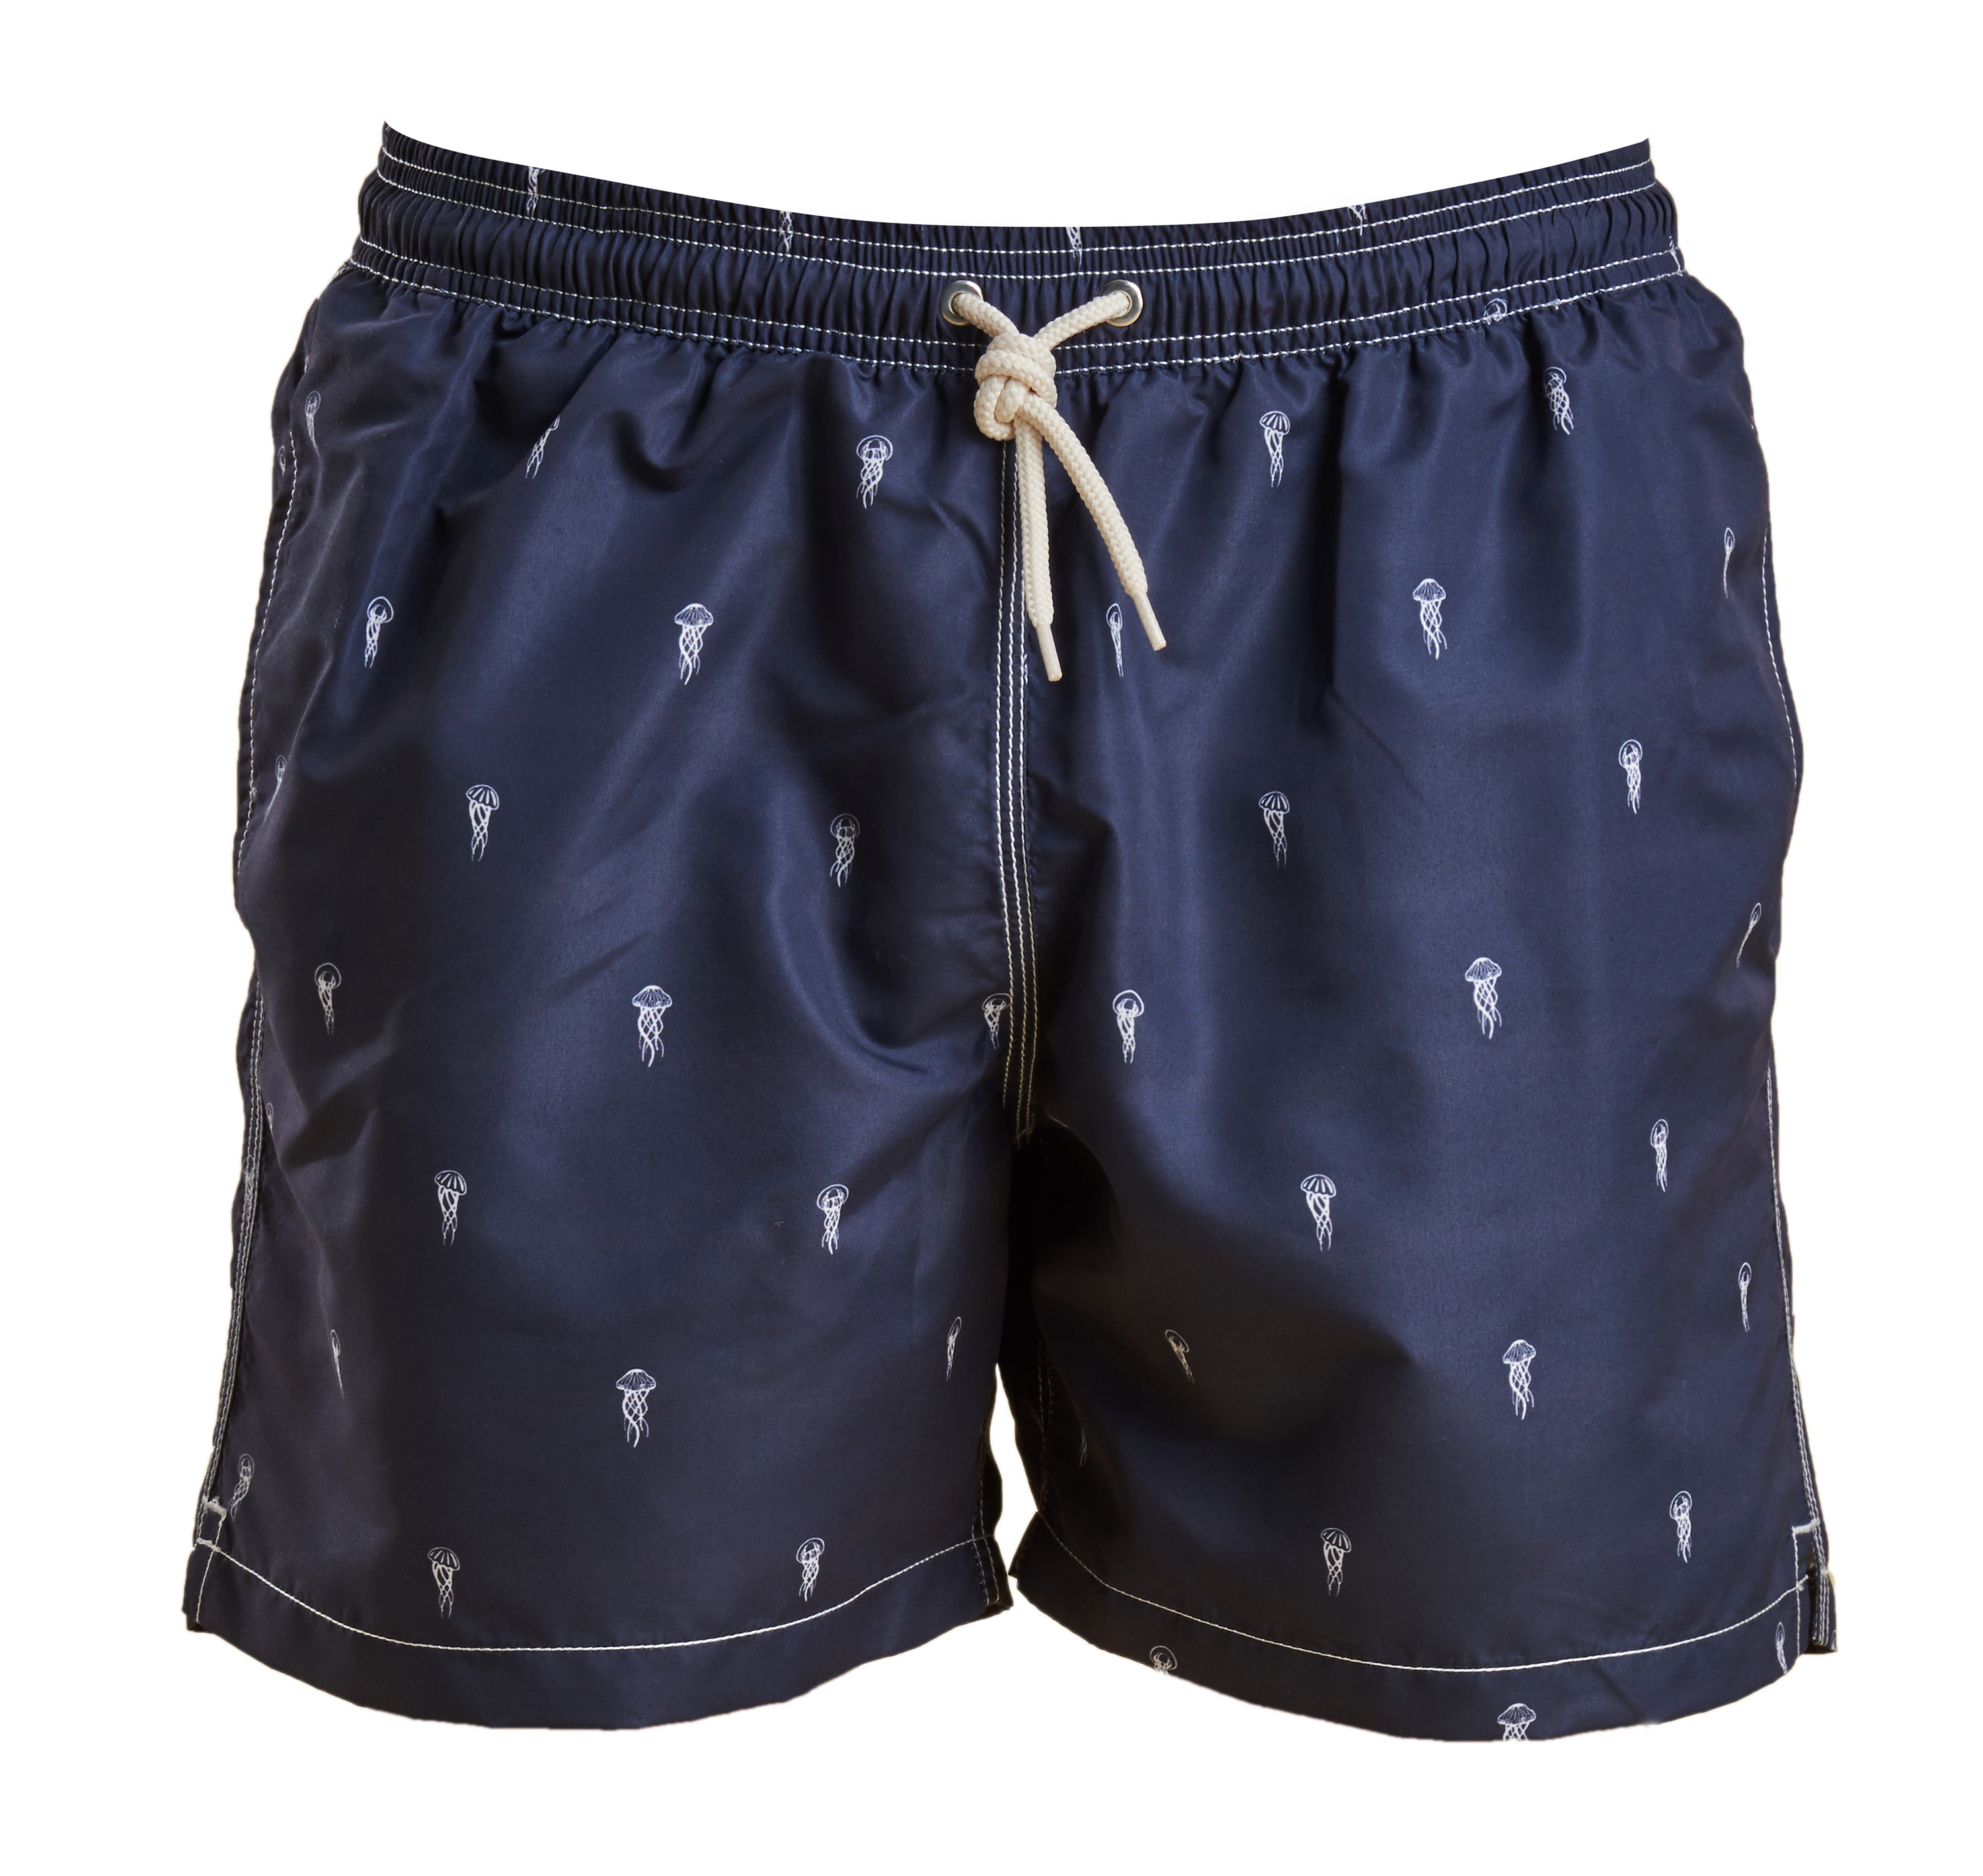 Jellyfish Swim Short